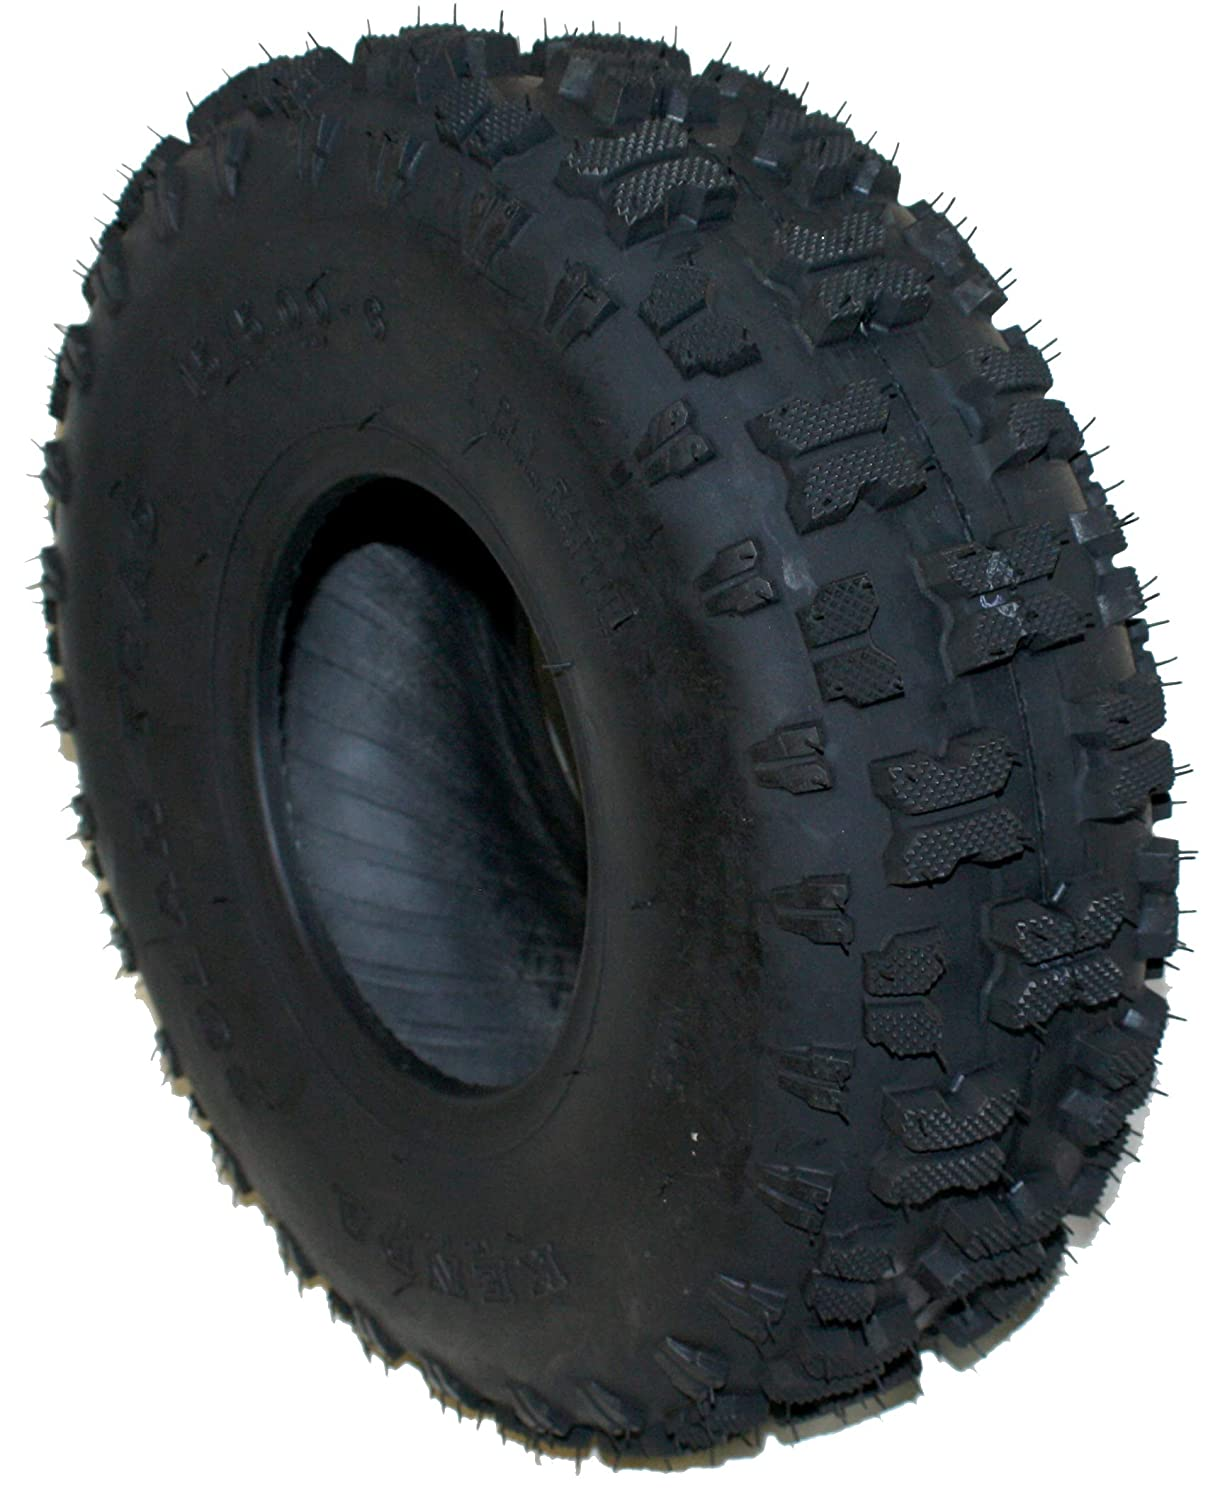 Kenda Polar Trac Snow Tire: 15X5.00-6 - 2 Ply Tire Tubeless